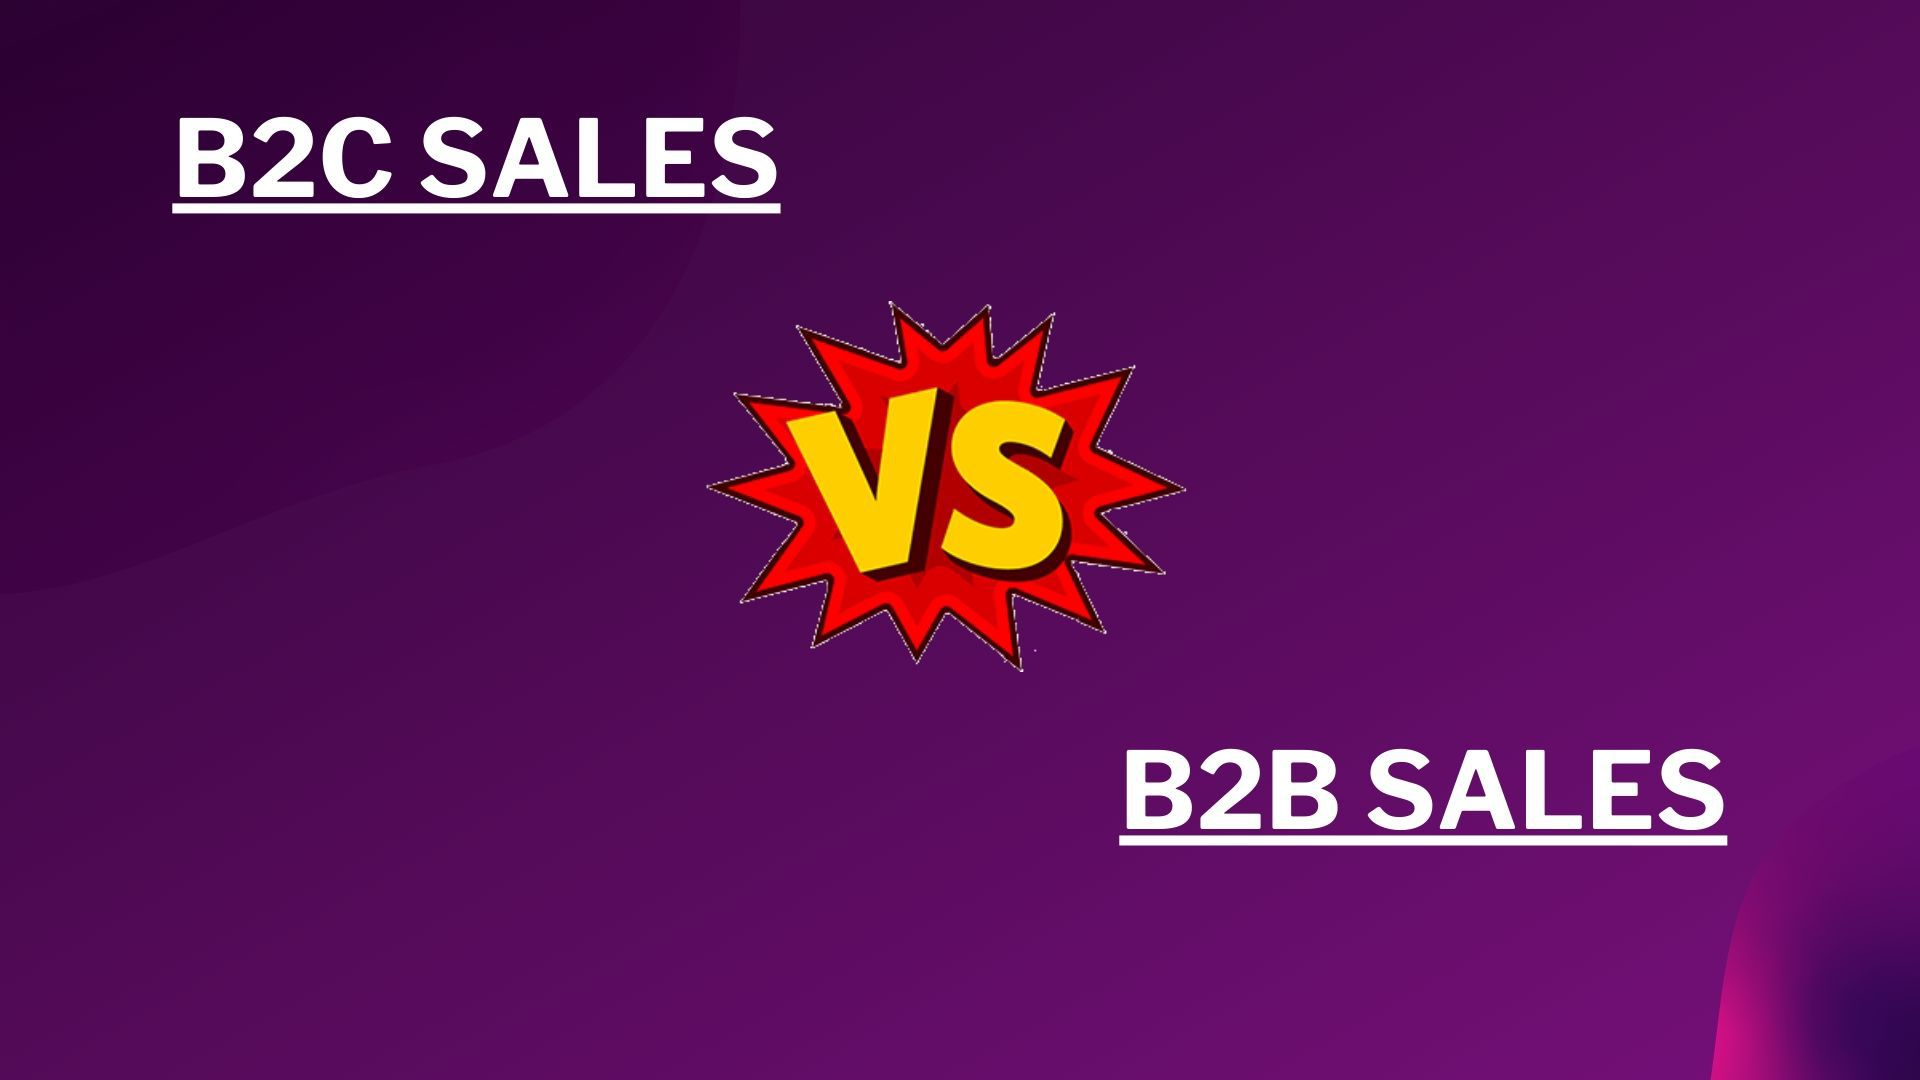 Differences between B2C Sales and B2B sales